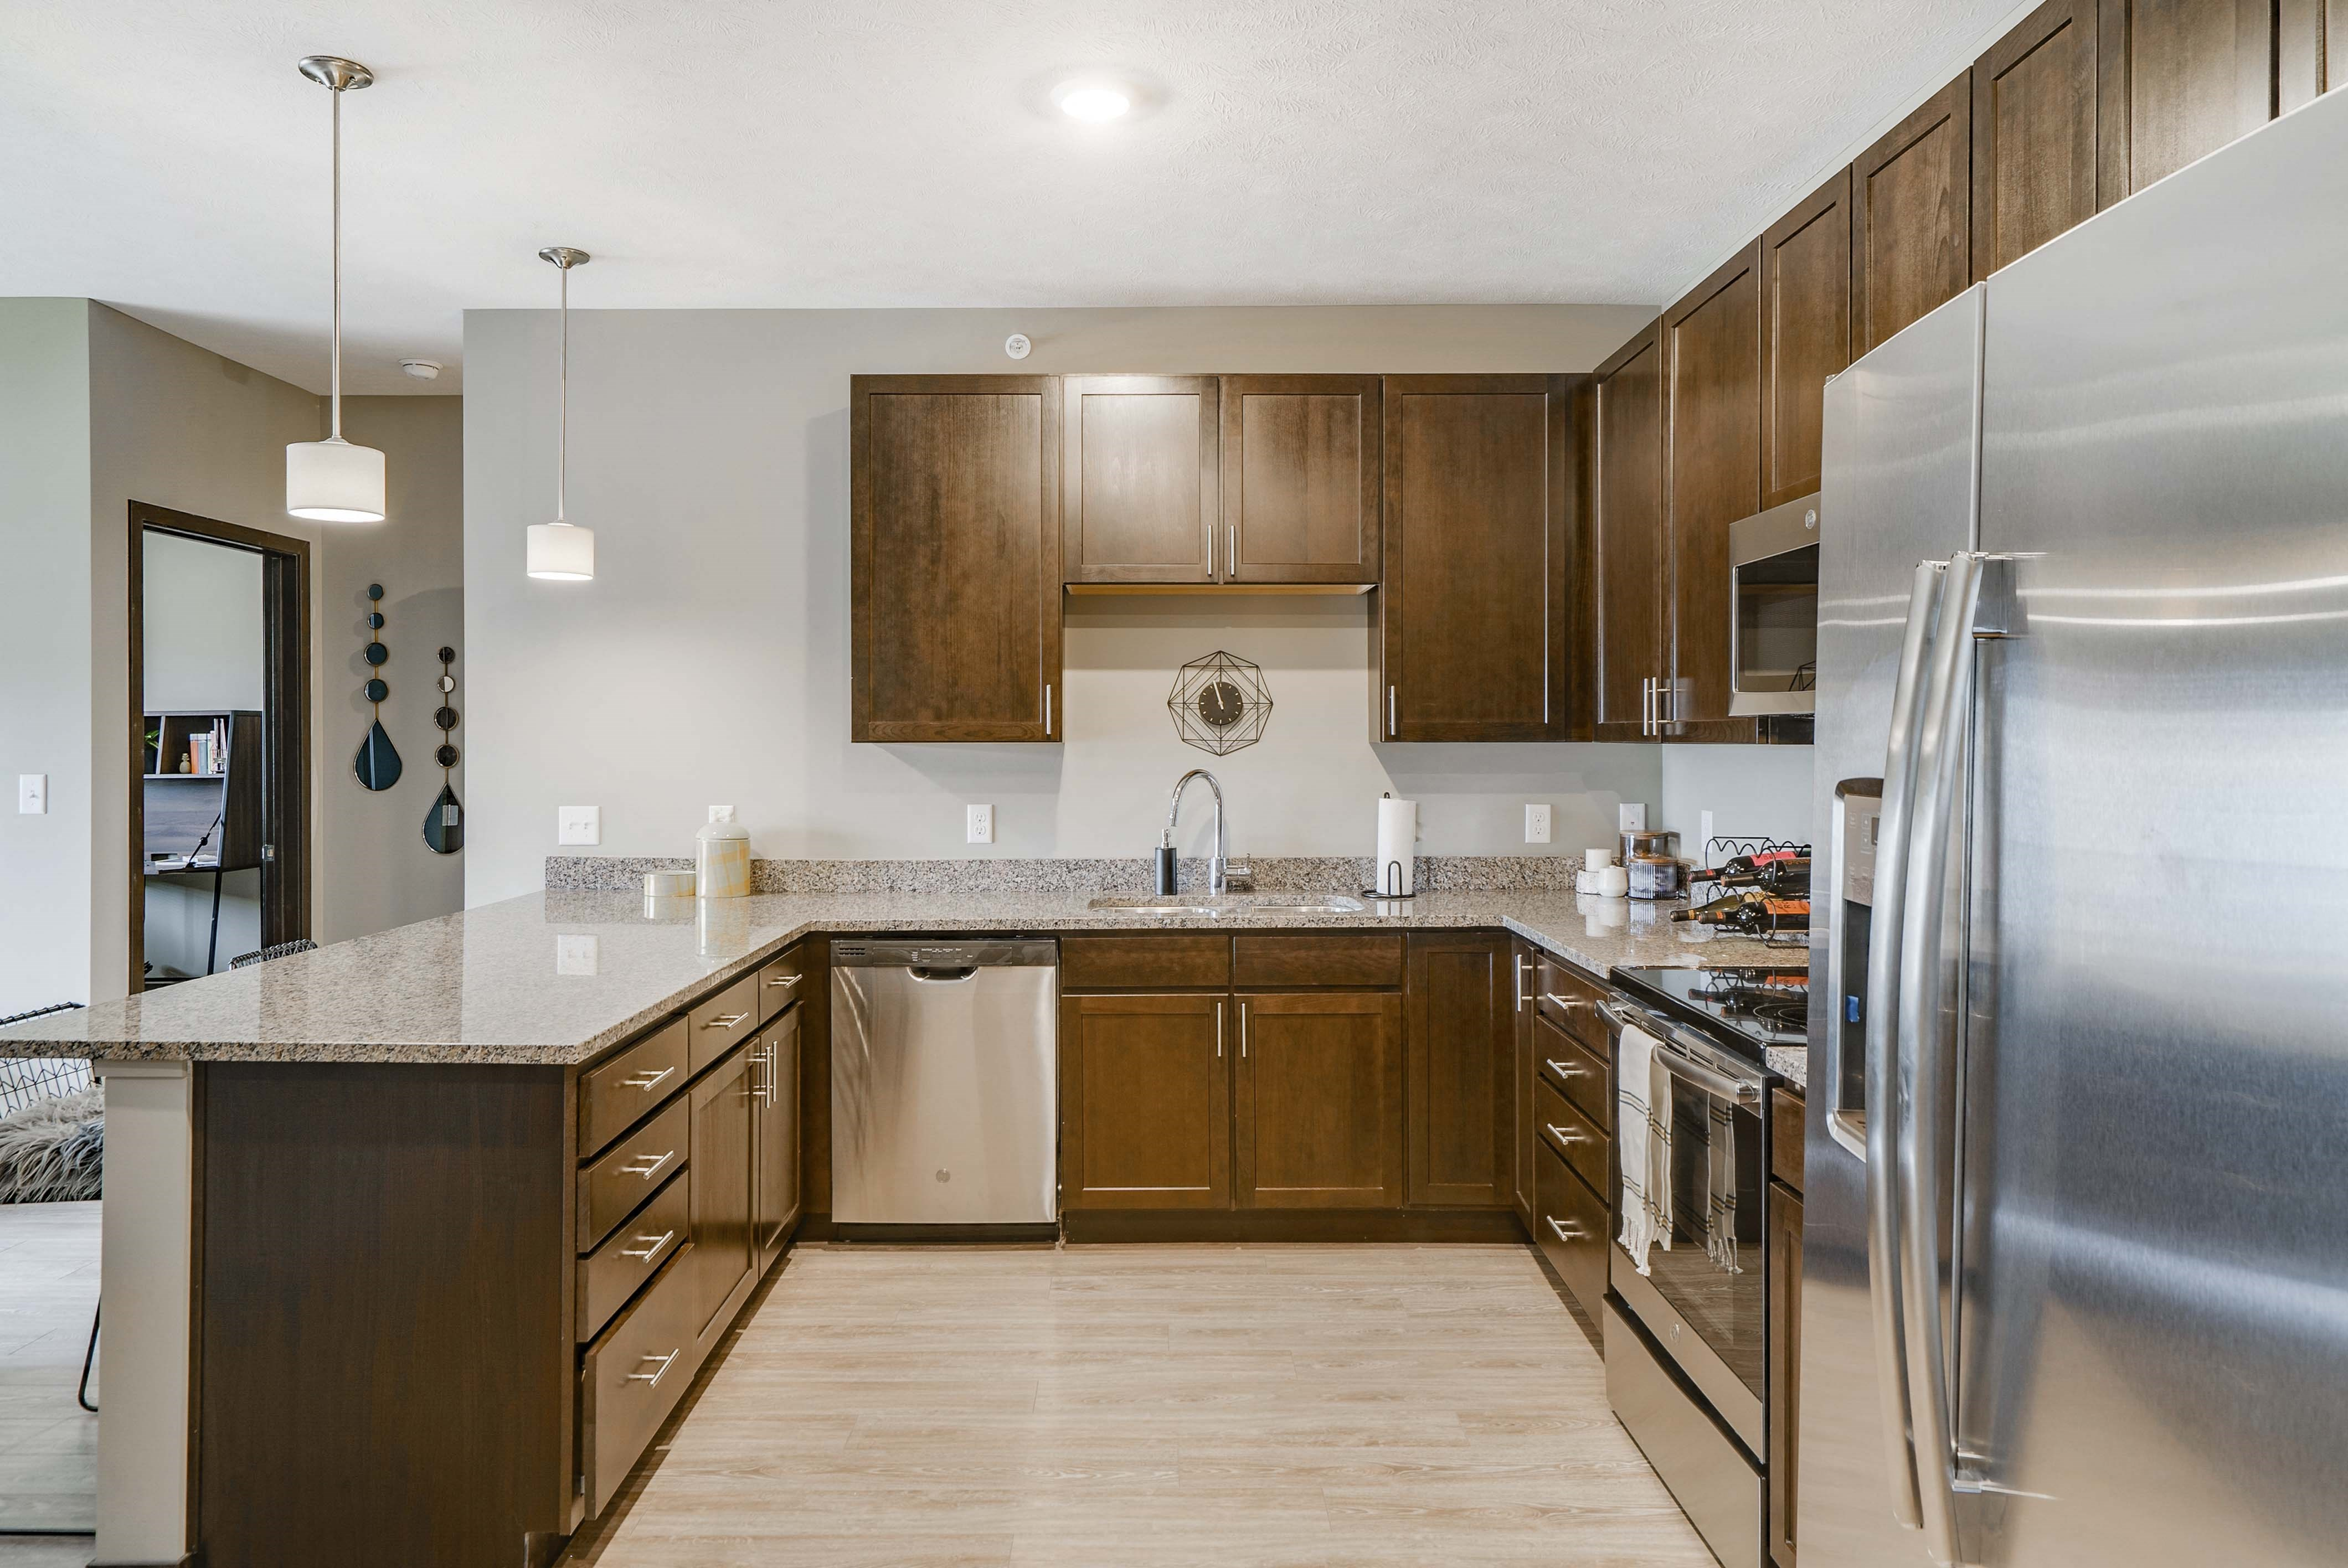 Spacious kitchens with granite countertops at WH Flats new luxury apartments in south Lincoln NE 68516